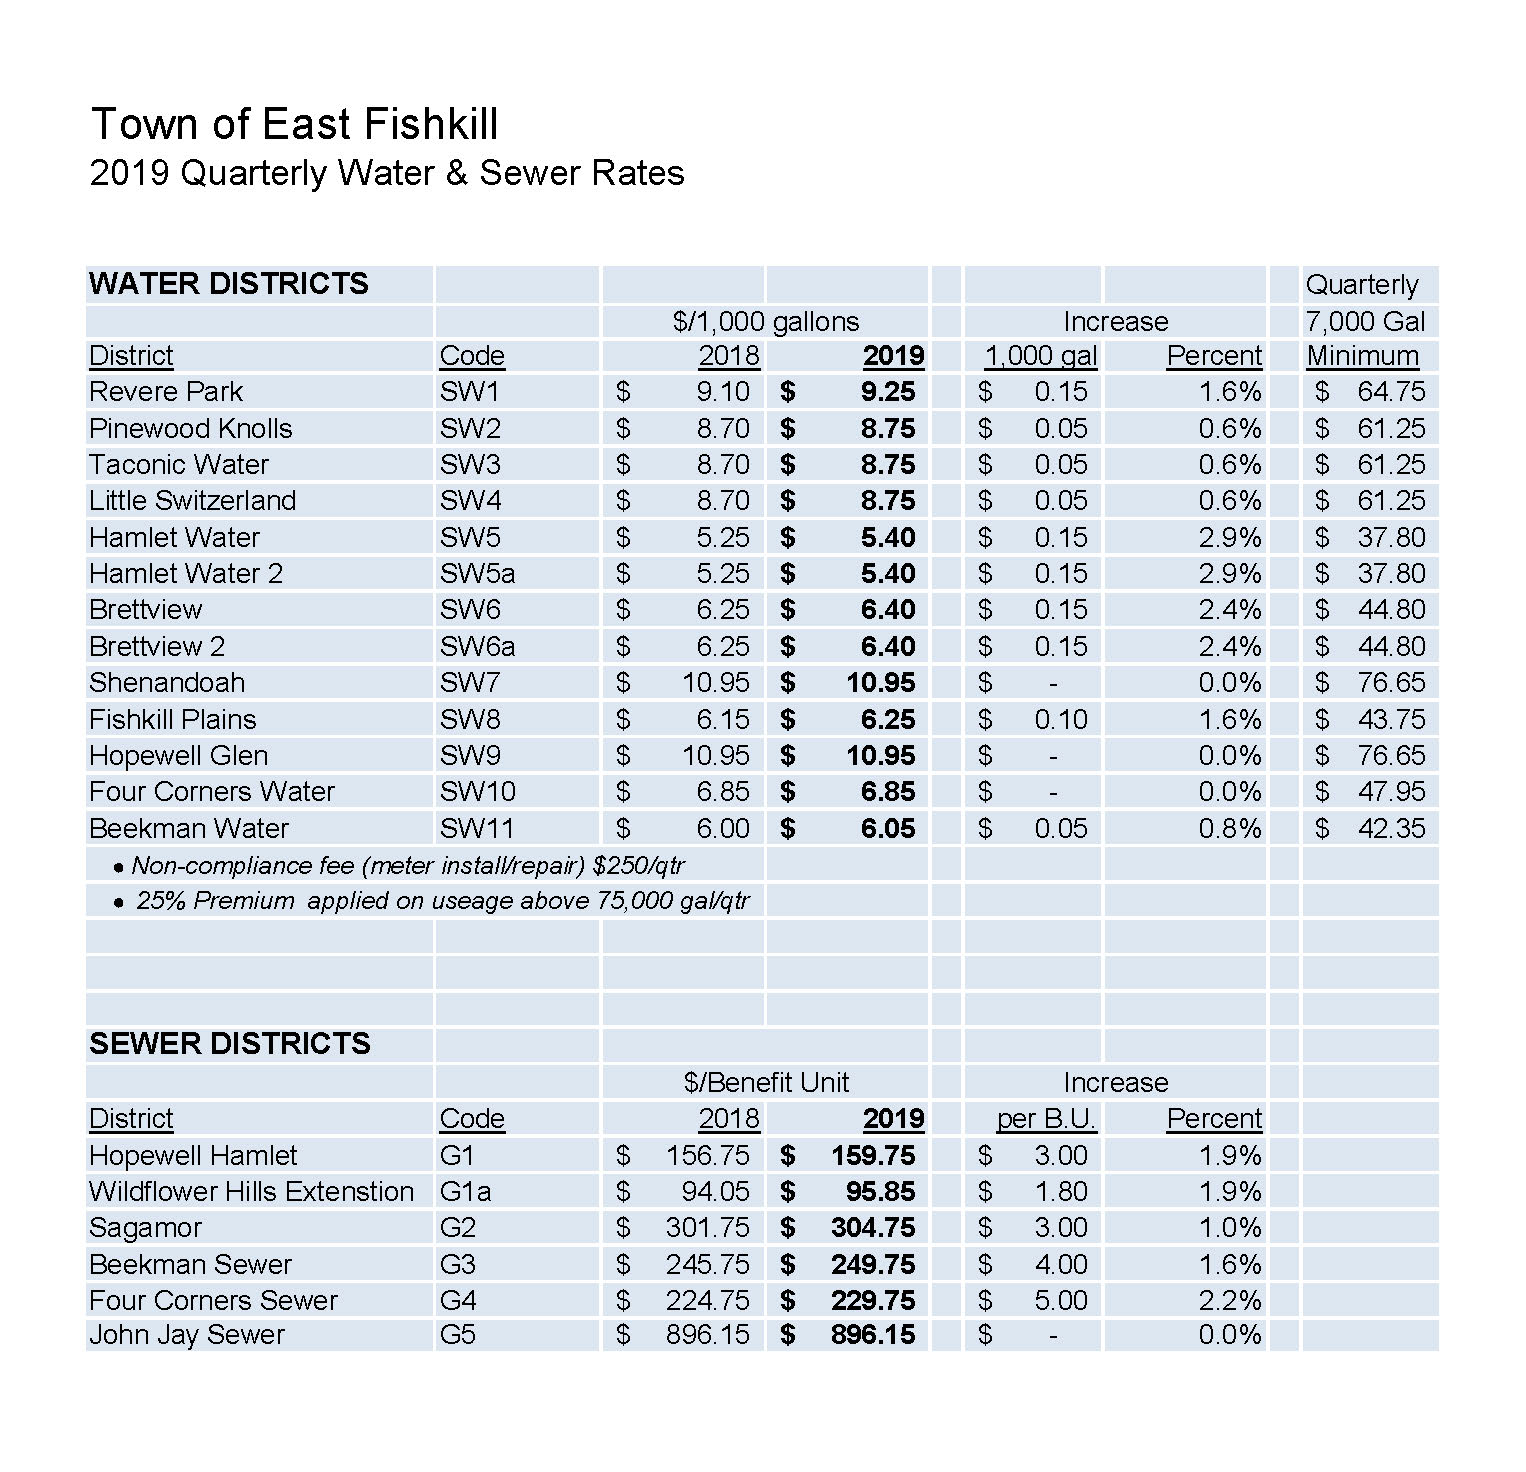 2019 Quarterly Water and Sewer Rate Schedule